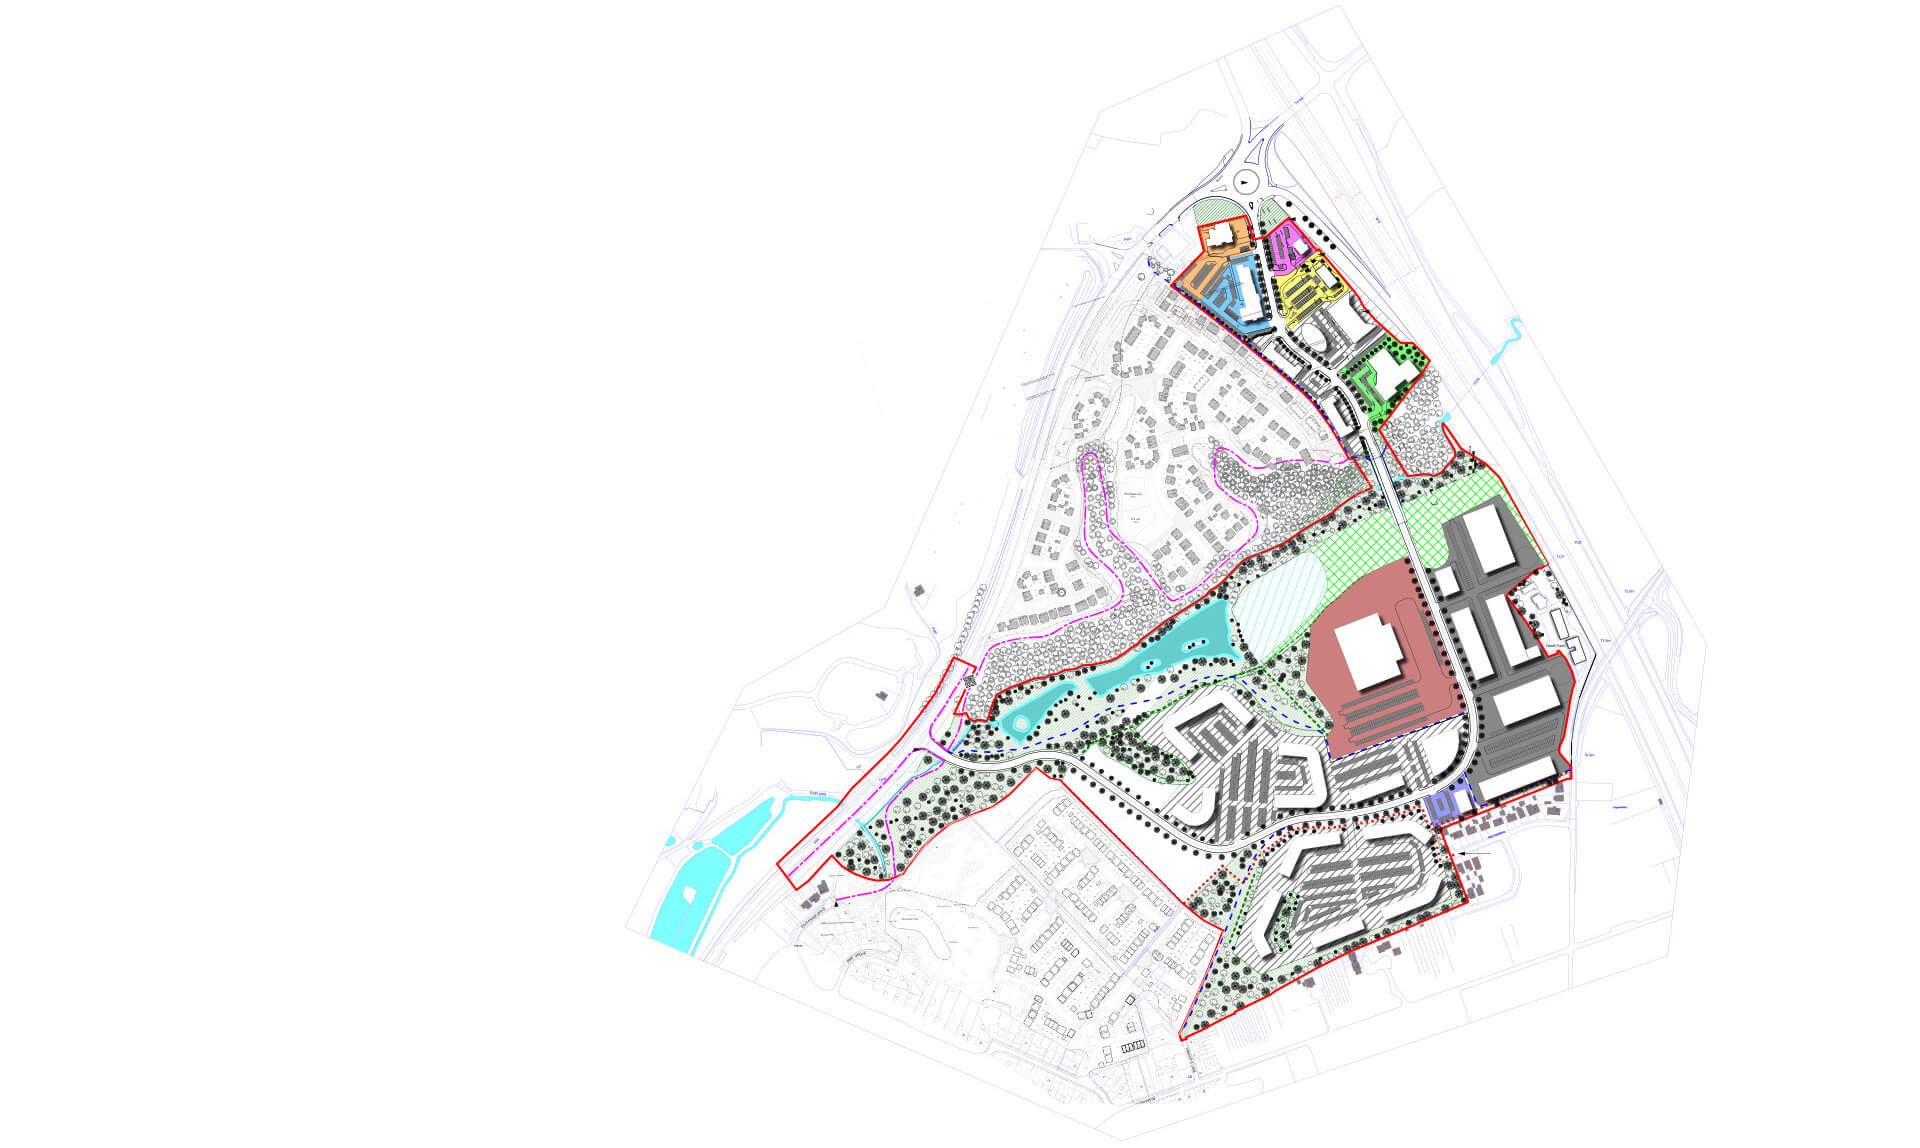 Junction 17, M6, Sandbach - Commercial property development masterplan